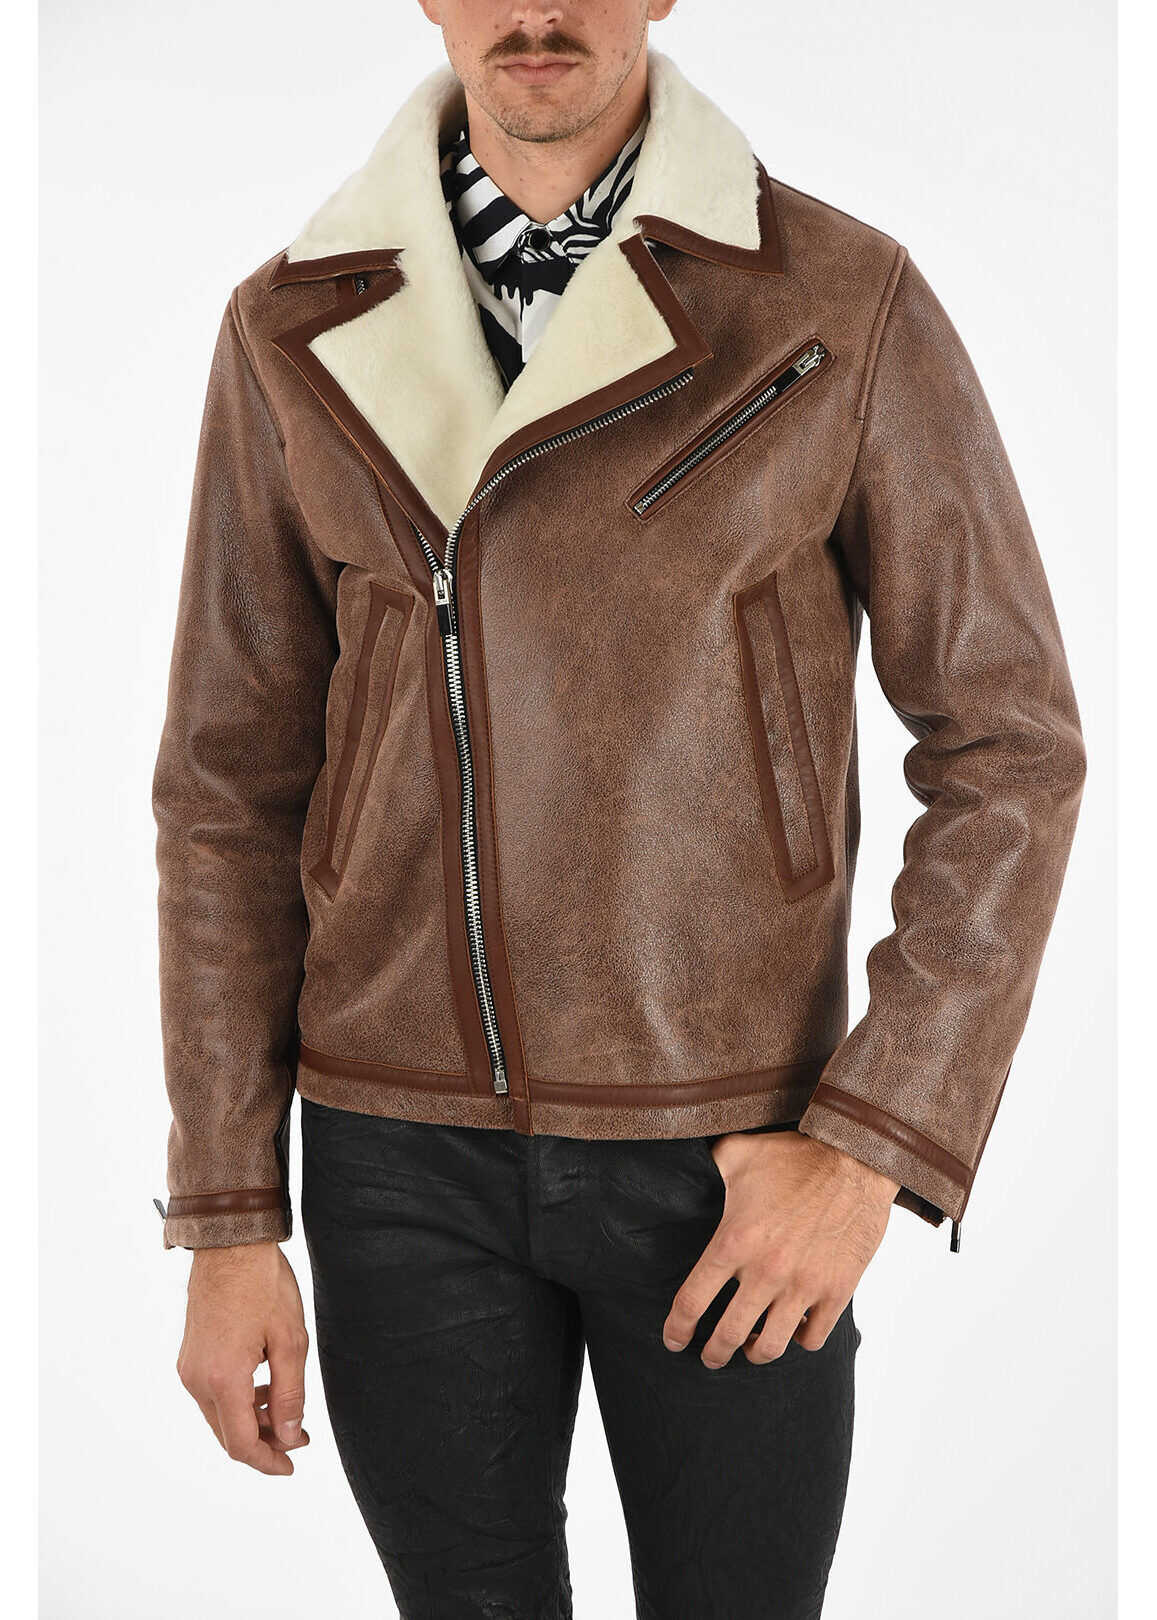 Just Cavalli Leather Biker Jacket BROWN imagine